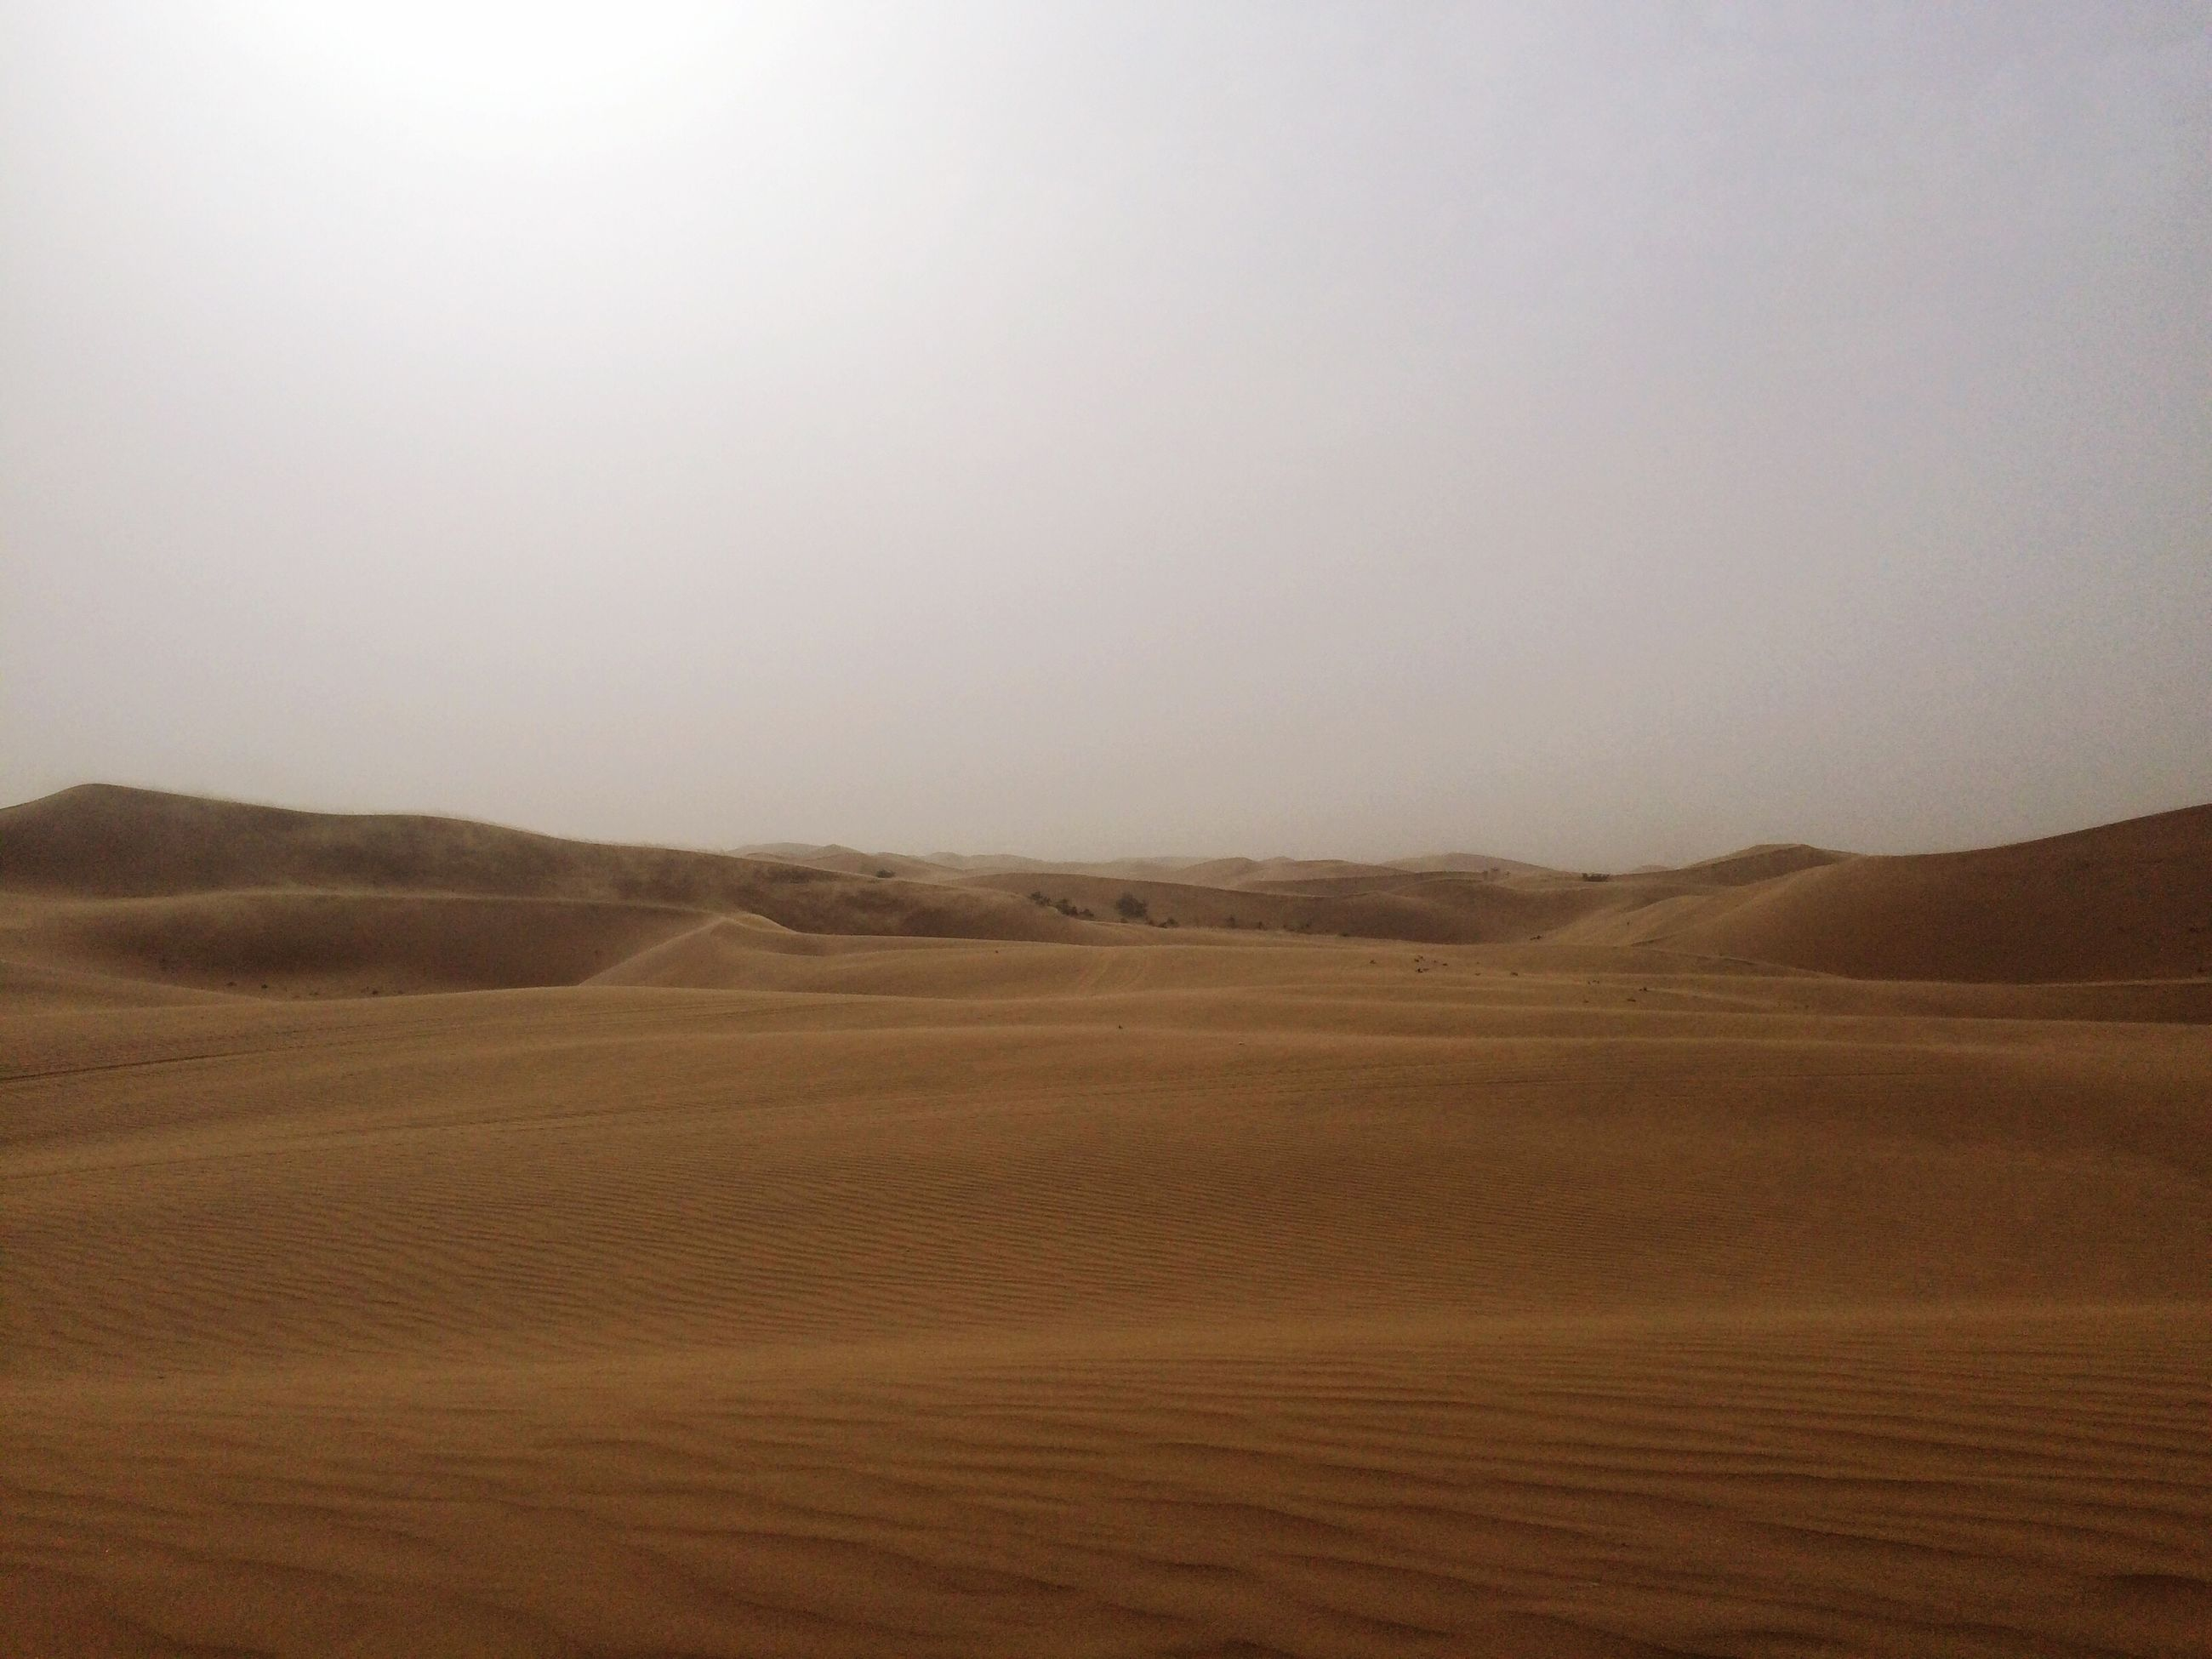 sand, tranquility, tranquil scene, landscape, scenics, copy space, beauty in nature, desert, nature, sand dune, remote, clear sky, arid climate, non-urban scene, idyllic, travel destinations, wave pattern, outdoors, sky, horizon over land, extreme terrain, surface level, no people